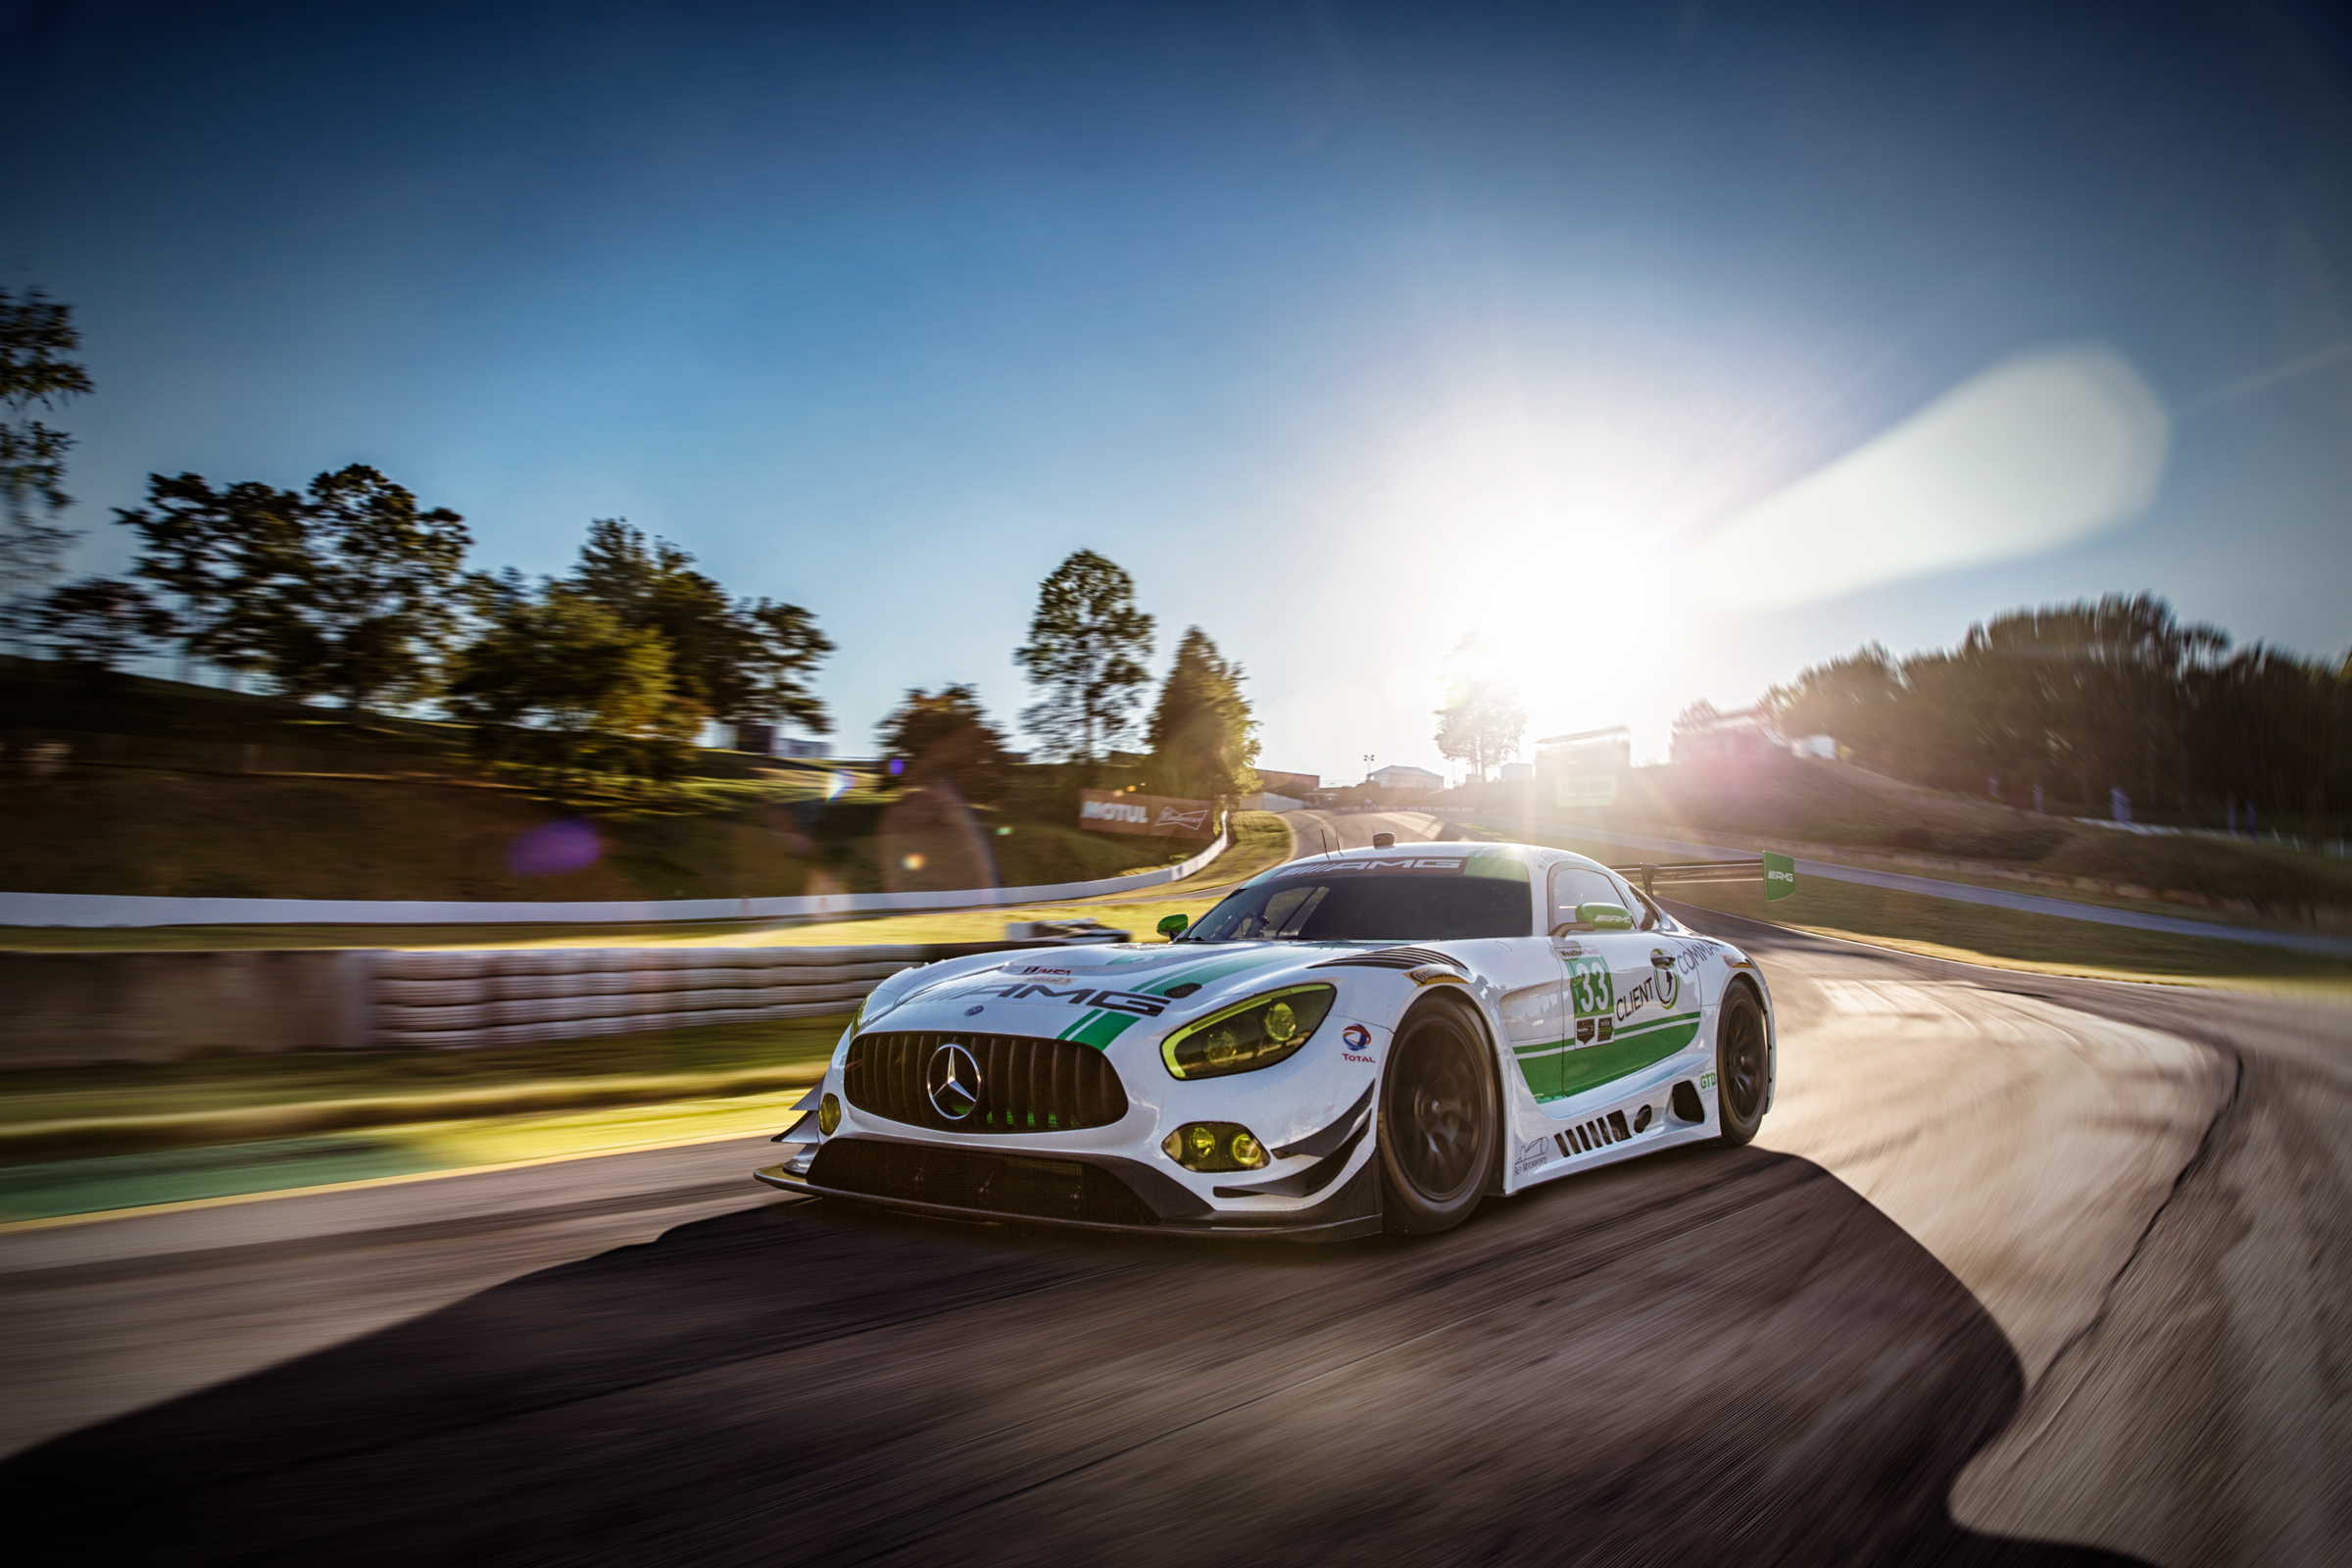 Mercedes AMG-GT3 Fahraufnahme auf der berühmten Strecke Petit Le Mans in der Nähe von Atlanta, USA. Mercedes AMG-GT3 driving shot at the famous track of Petit Le Mans, close to Atlanta, US.